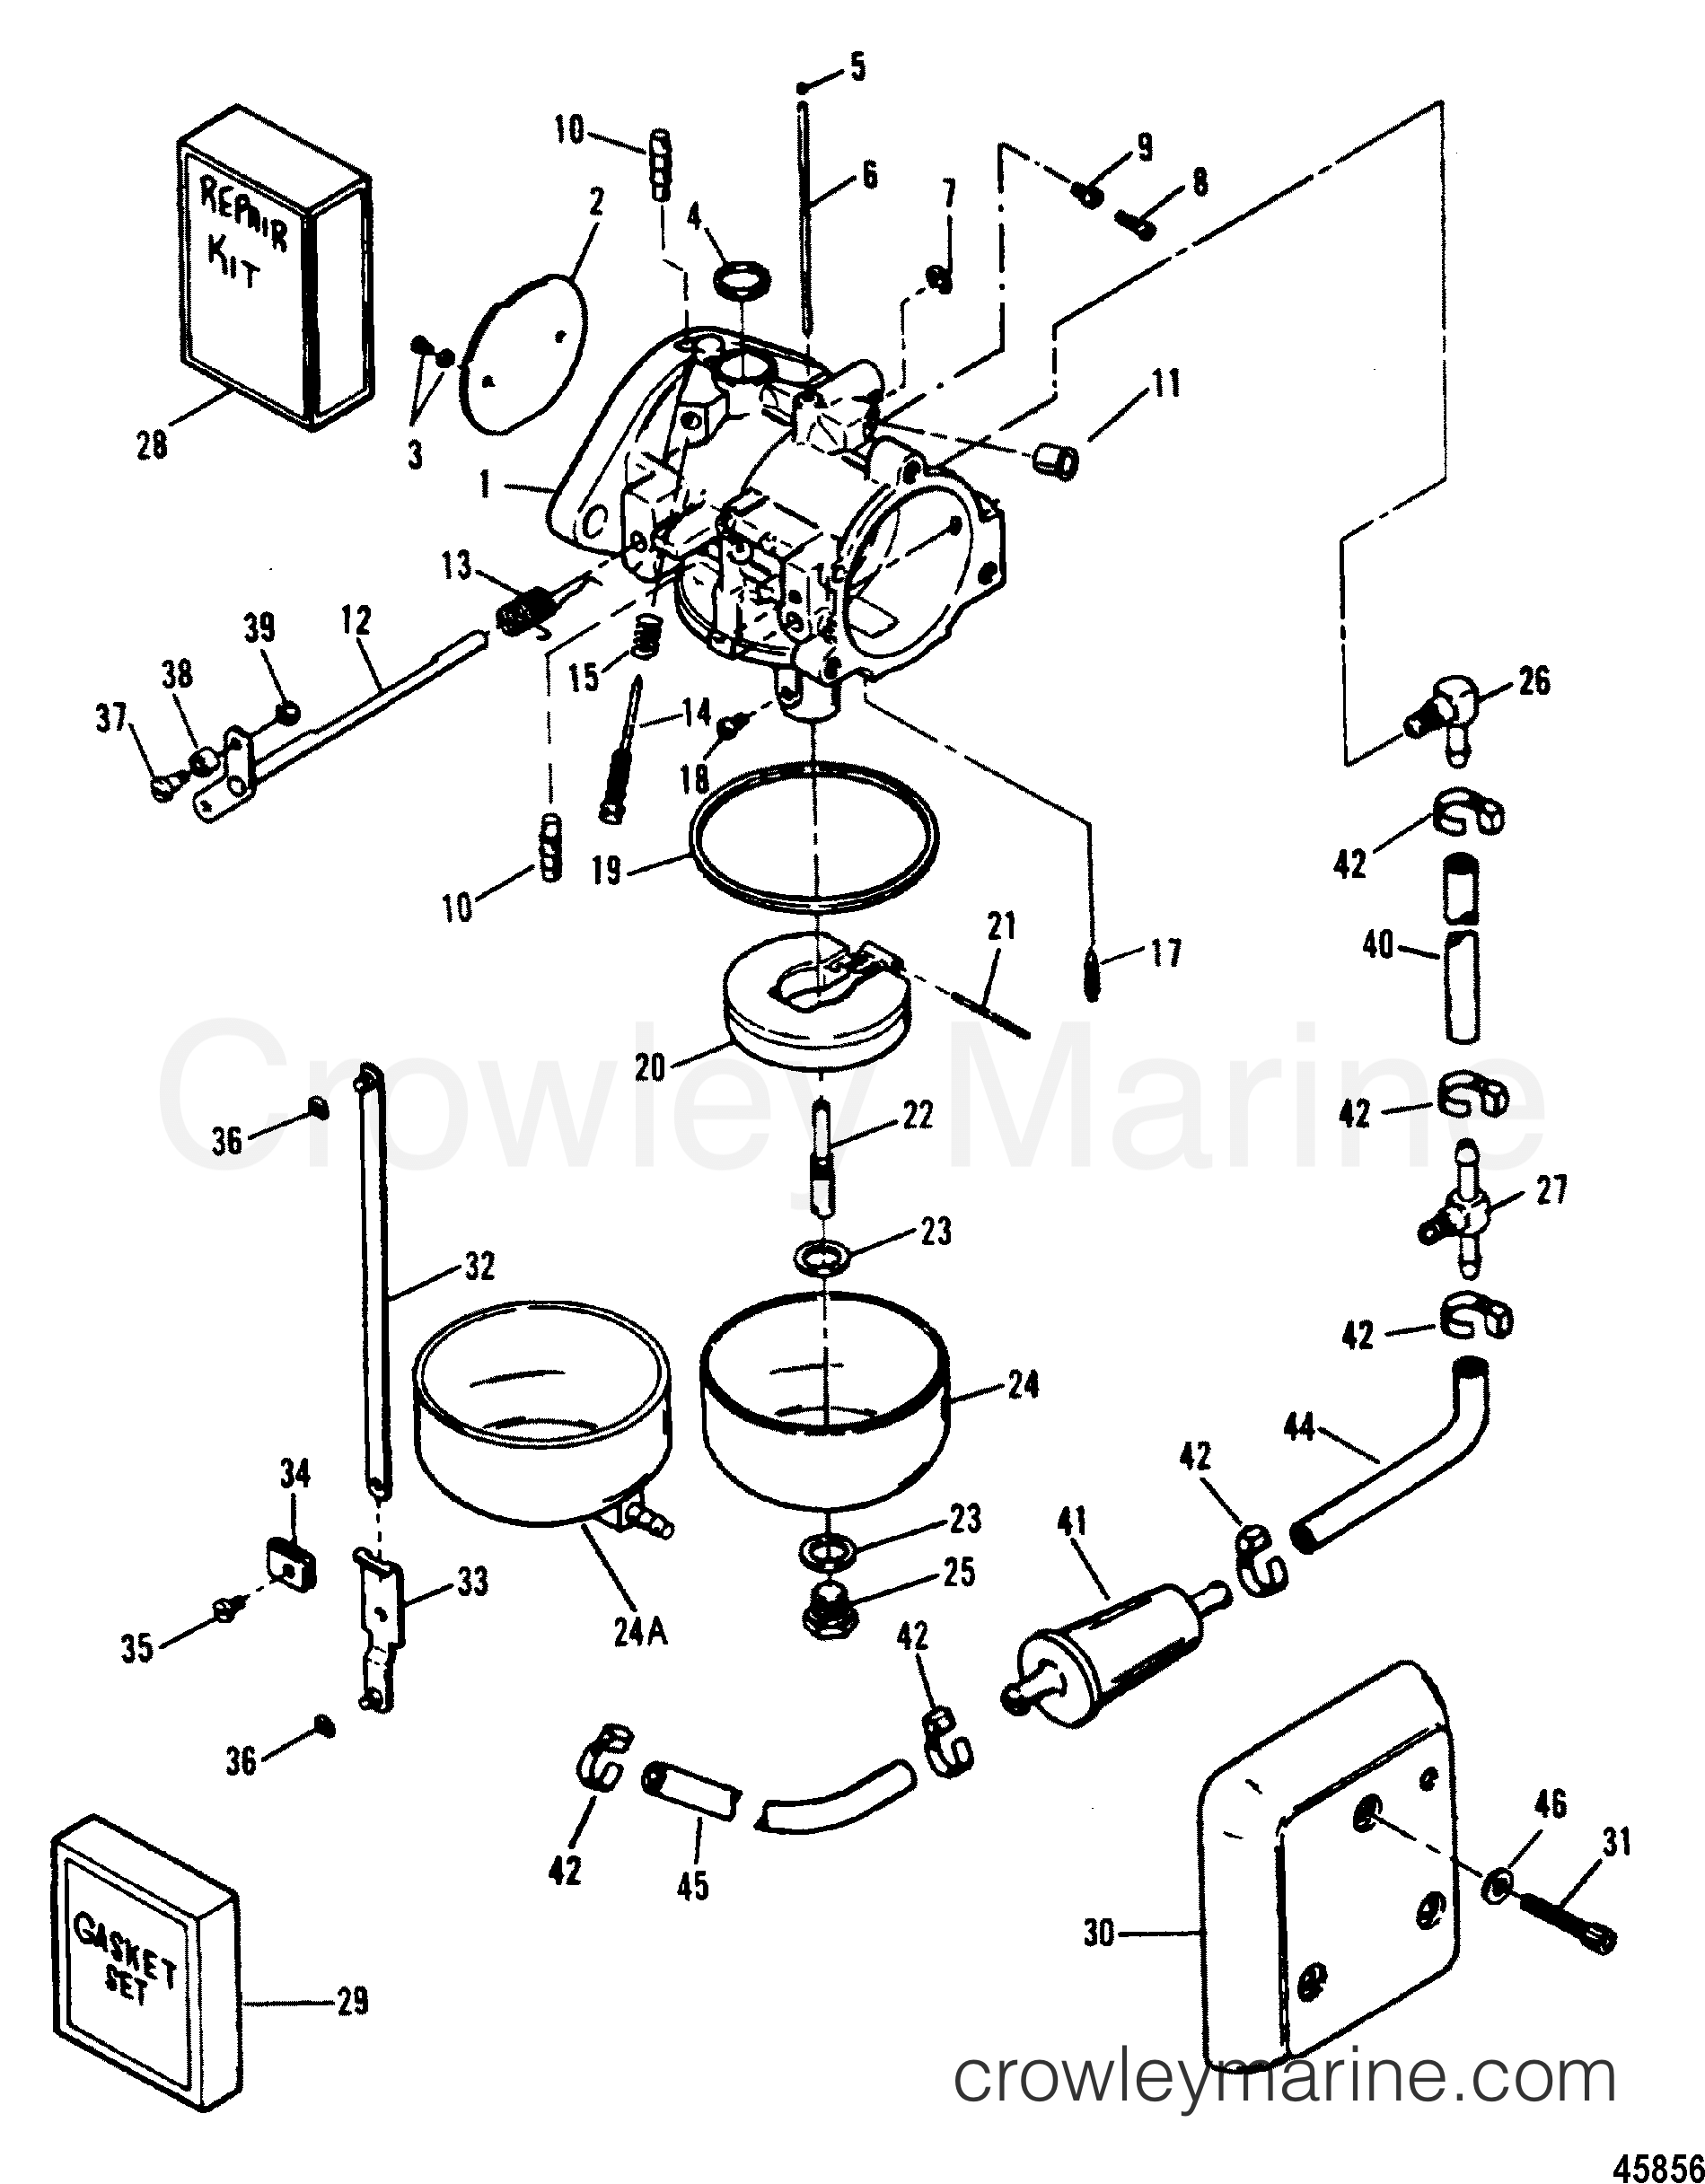 wiring diagram for 50 hp mercury outboard wiring diagram